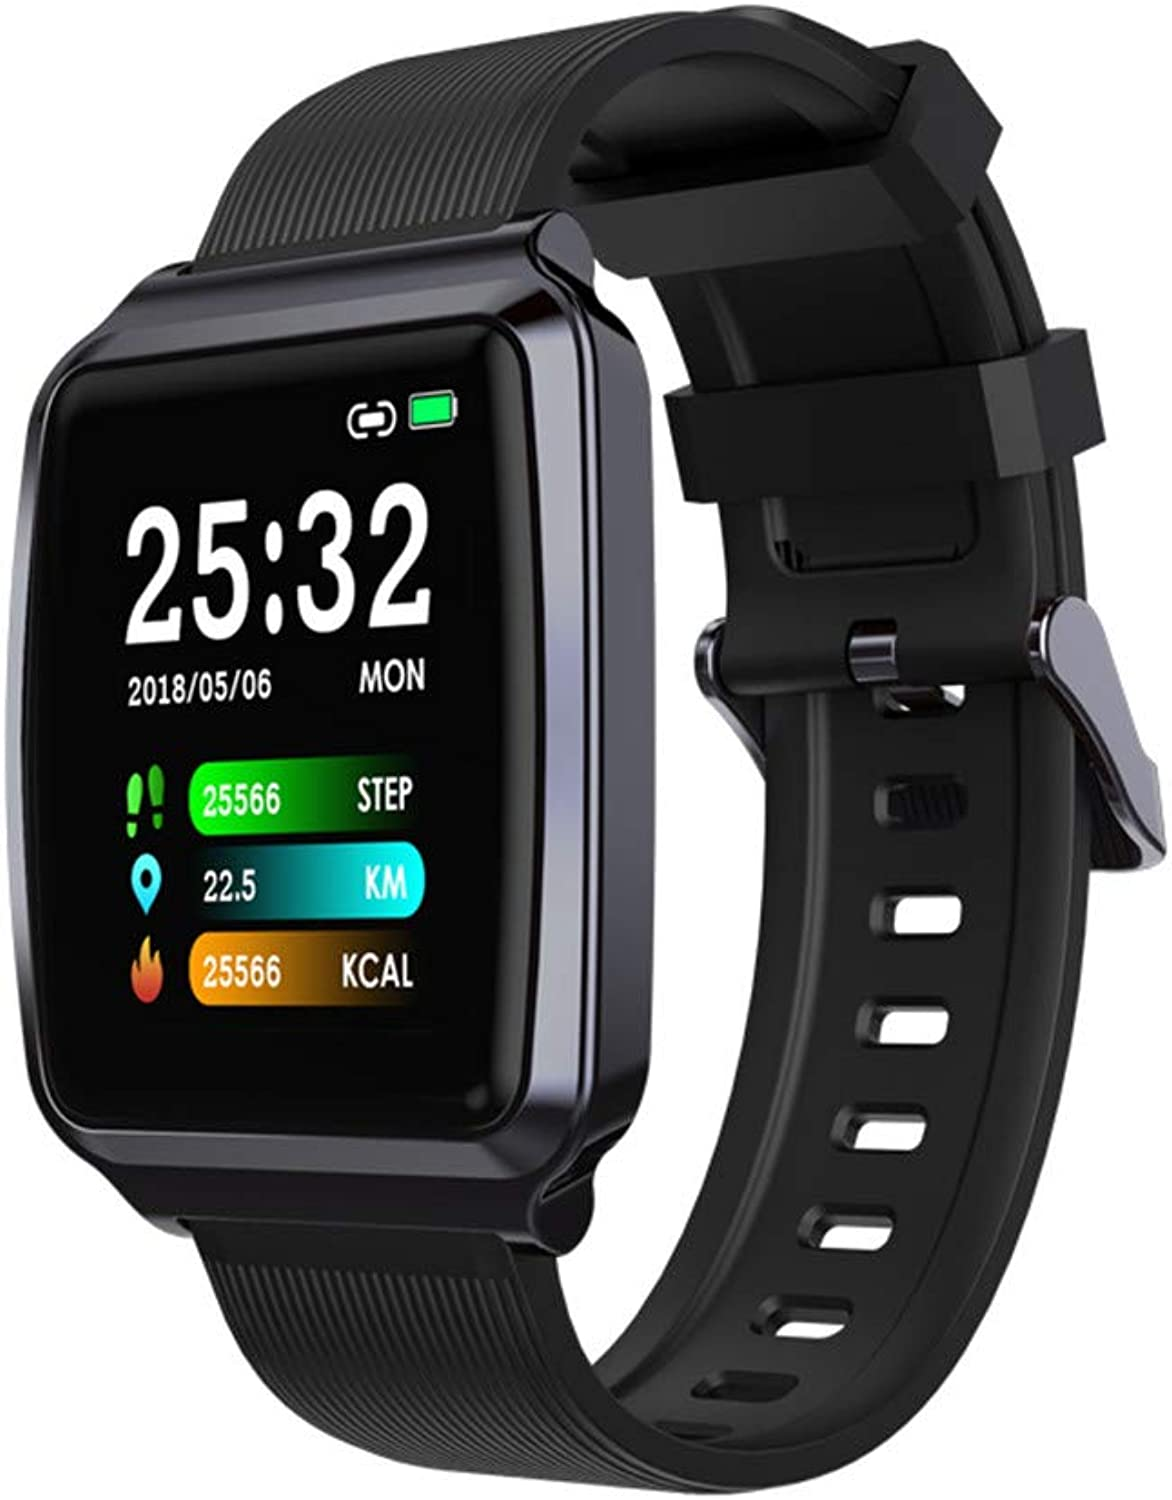 Fitness Tracker, 1.3  color Screen Fitness Watch,Sport Tracker IP67 Waterproof for Heart Rate with Blood Pressure and Activity Tracker.